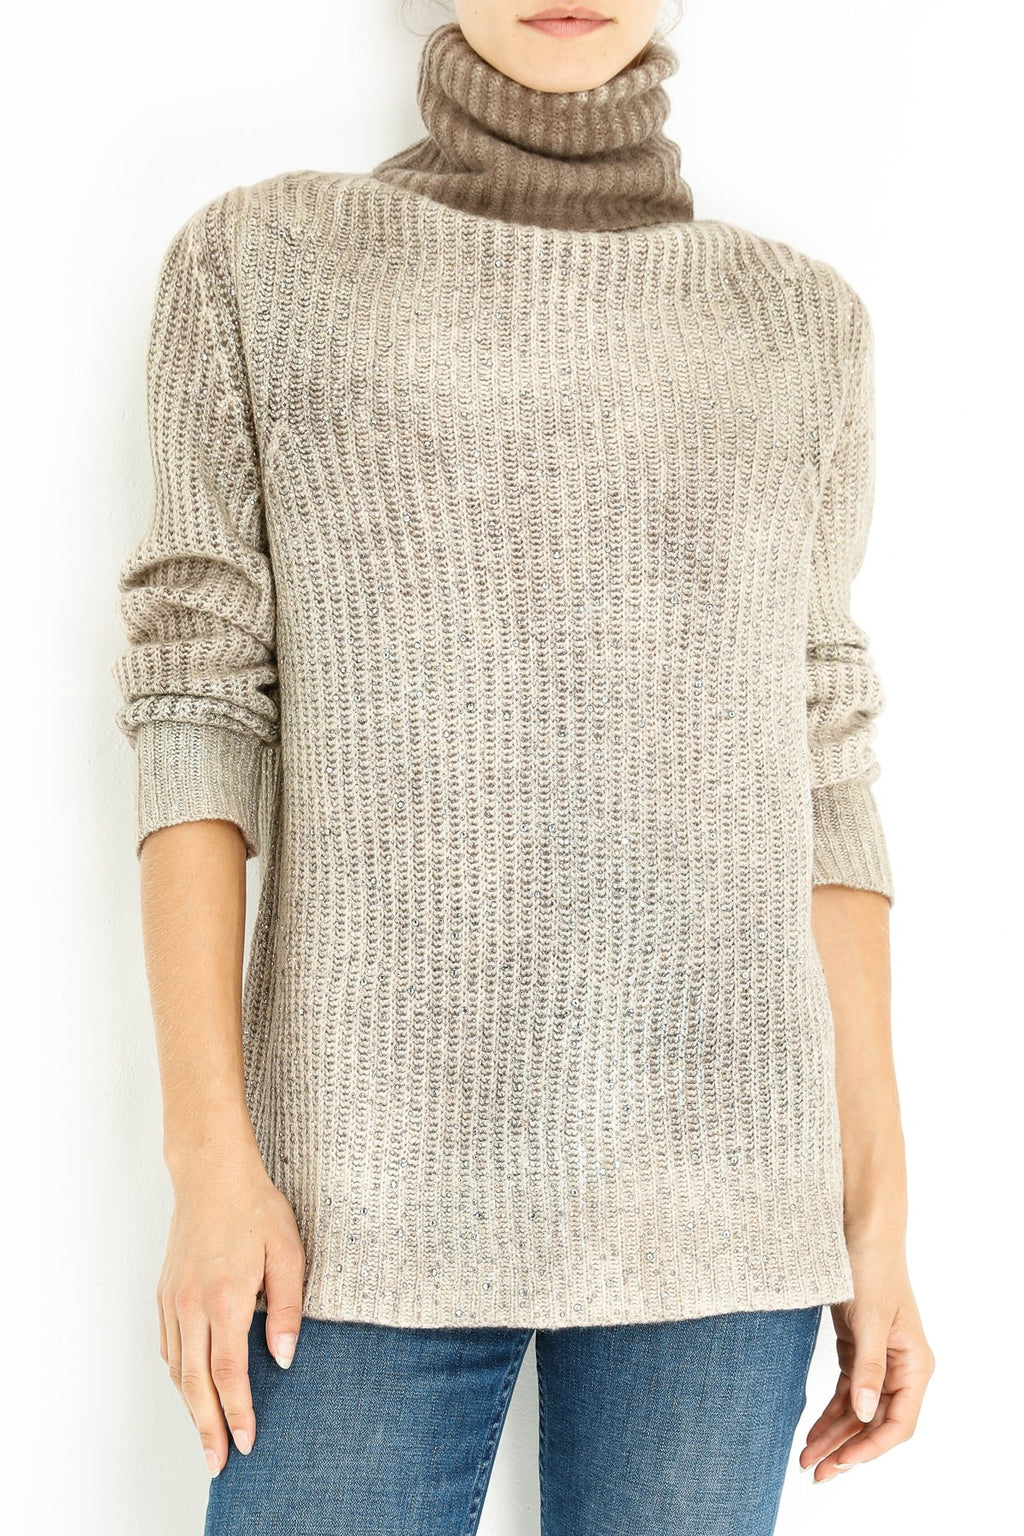 Avant Toi knit-turtleneck-with-stones